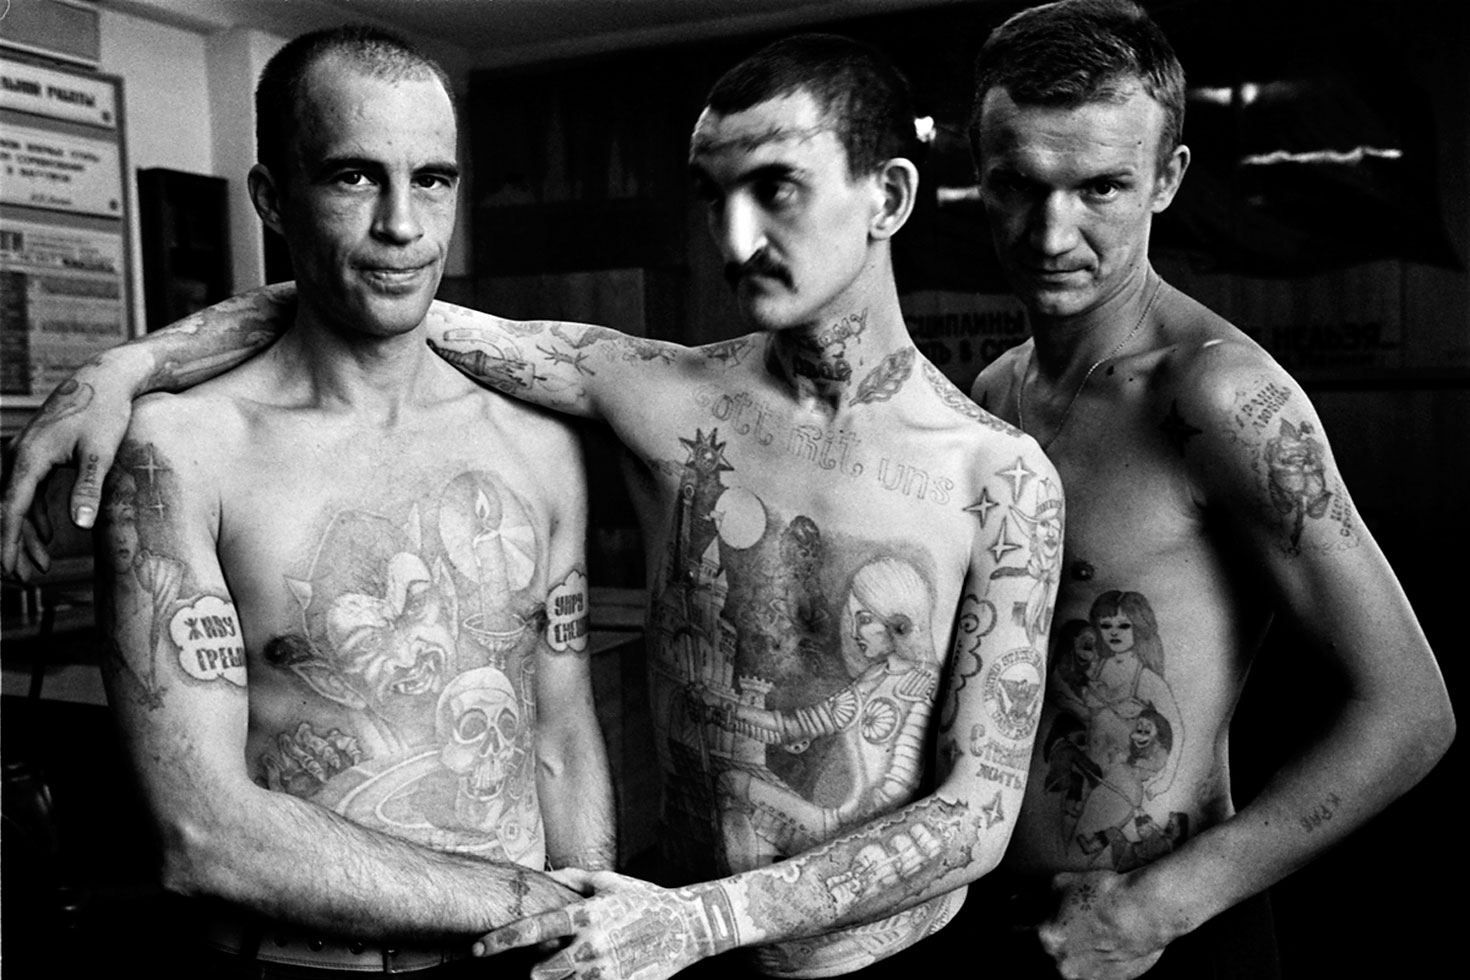 Russian Prison Tattoos Gang tattoos, Neck tattoo